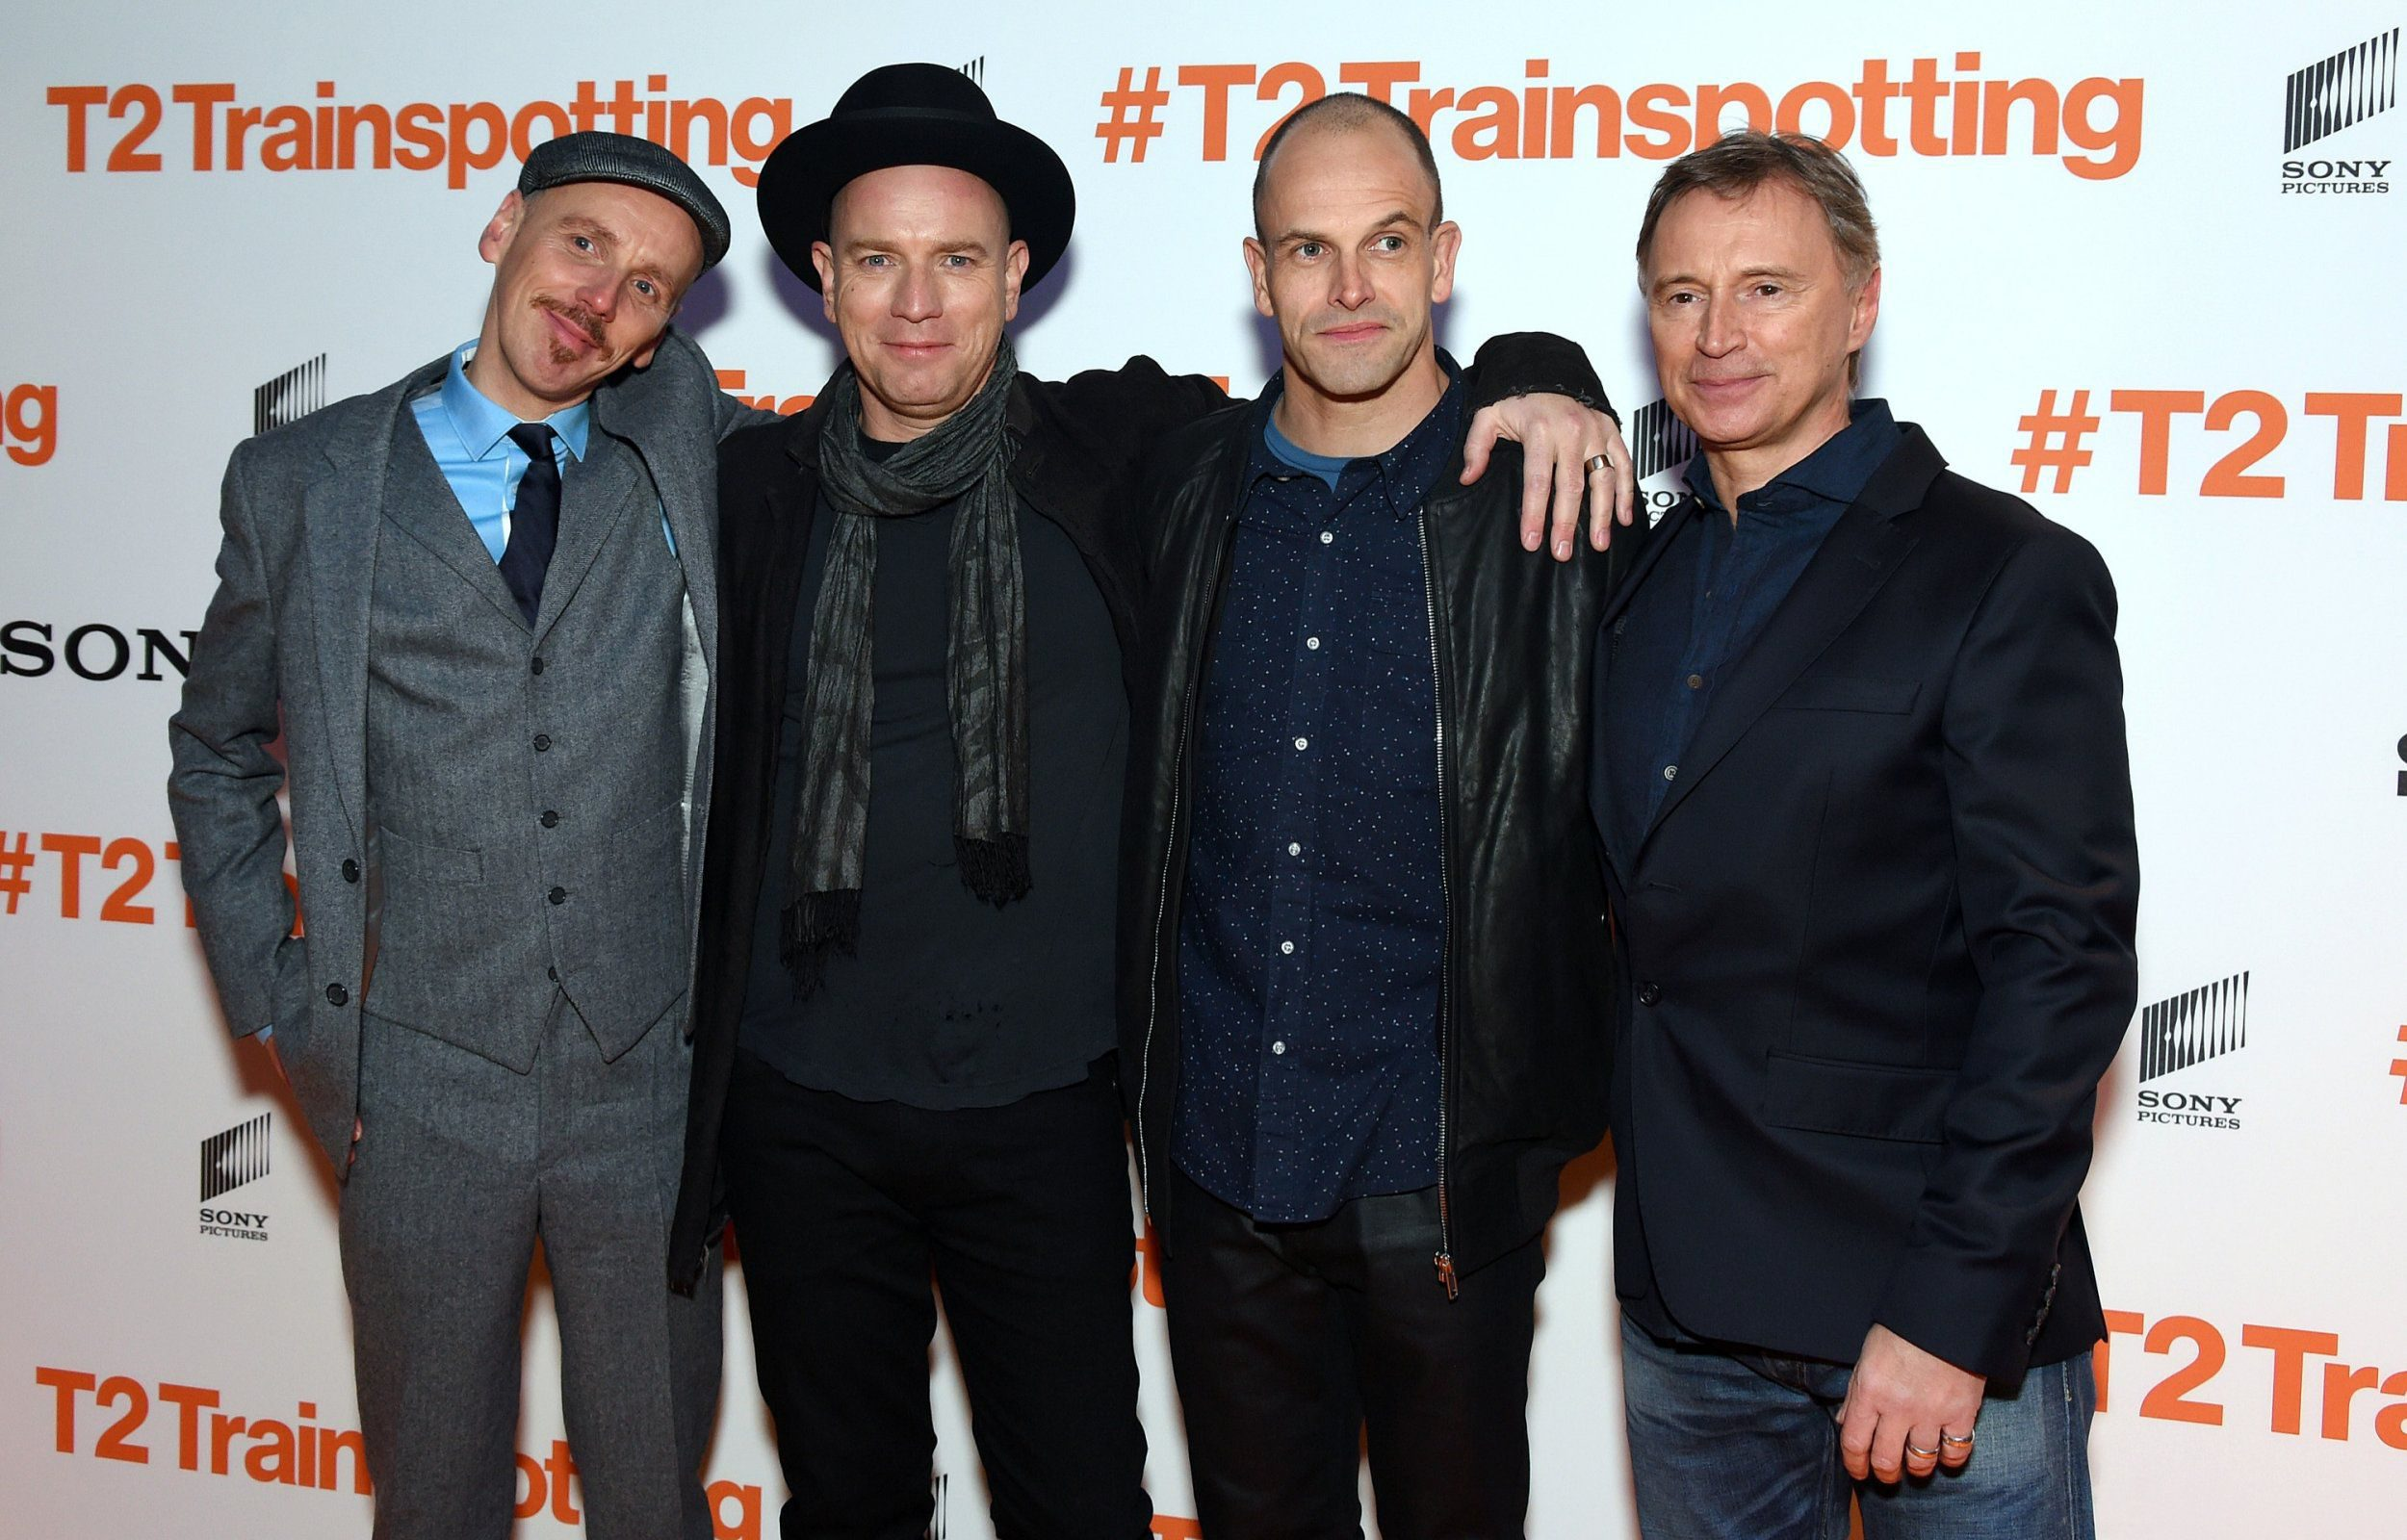 EDINBURGH, SCOTLAND - JANUARY 22: (L-R) Actors Ewen Bremner, Ewan McGregor, Jonny Lee Miller and Robert Carlyle attend the 'T2 Trainspotting' world premiere on January 22, 2017 in Edinburgh, United Kingdom. (Photo by Anthony Harvey/Getty Images)